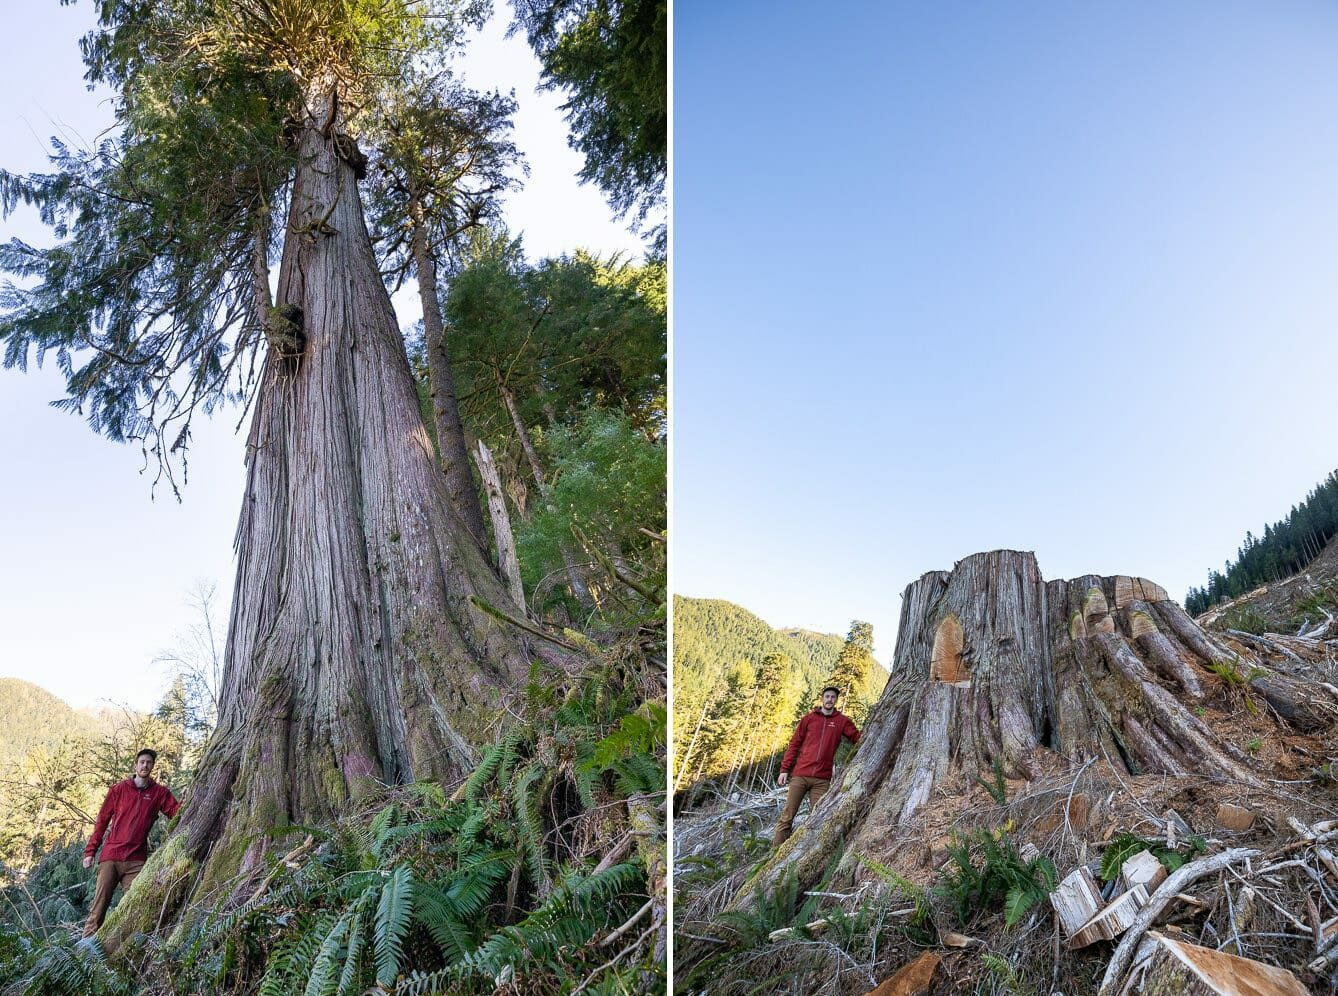 side by side comparisons of man standing by a large tree before and after it was cut down